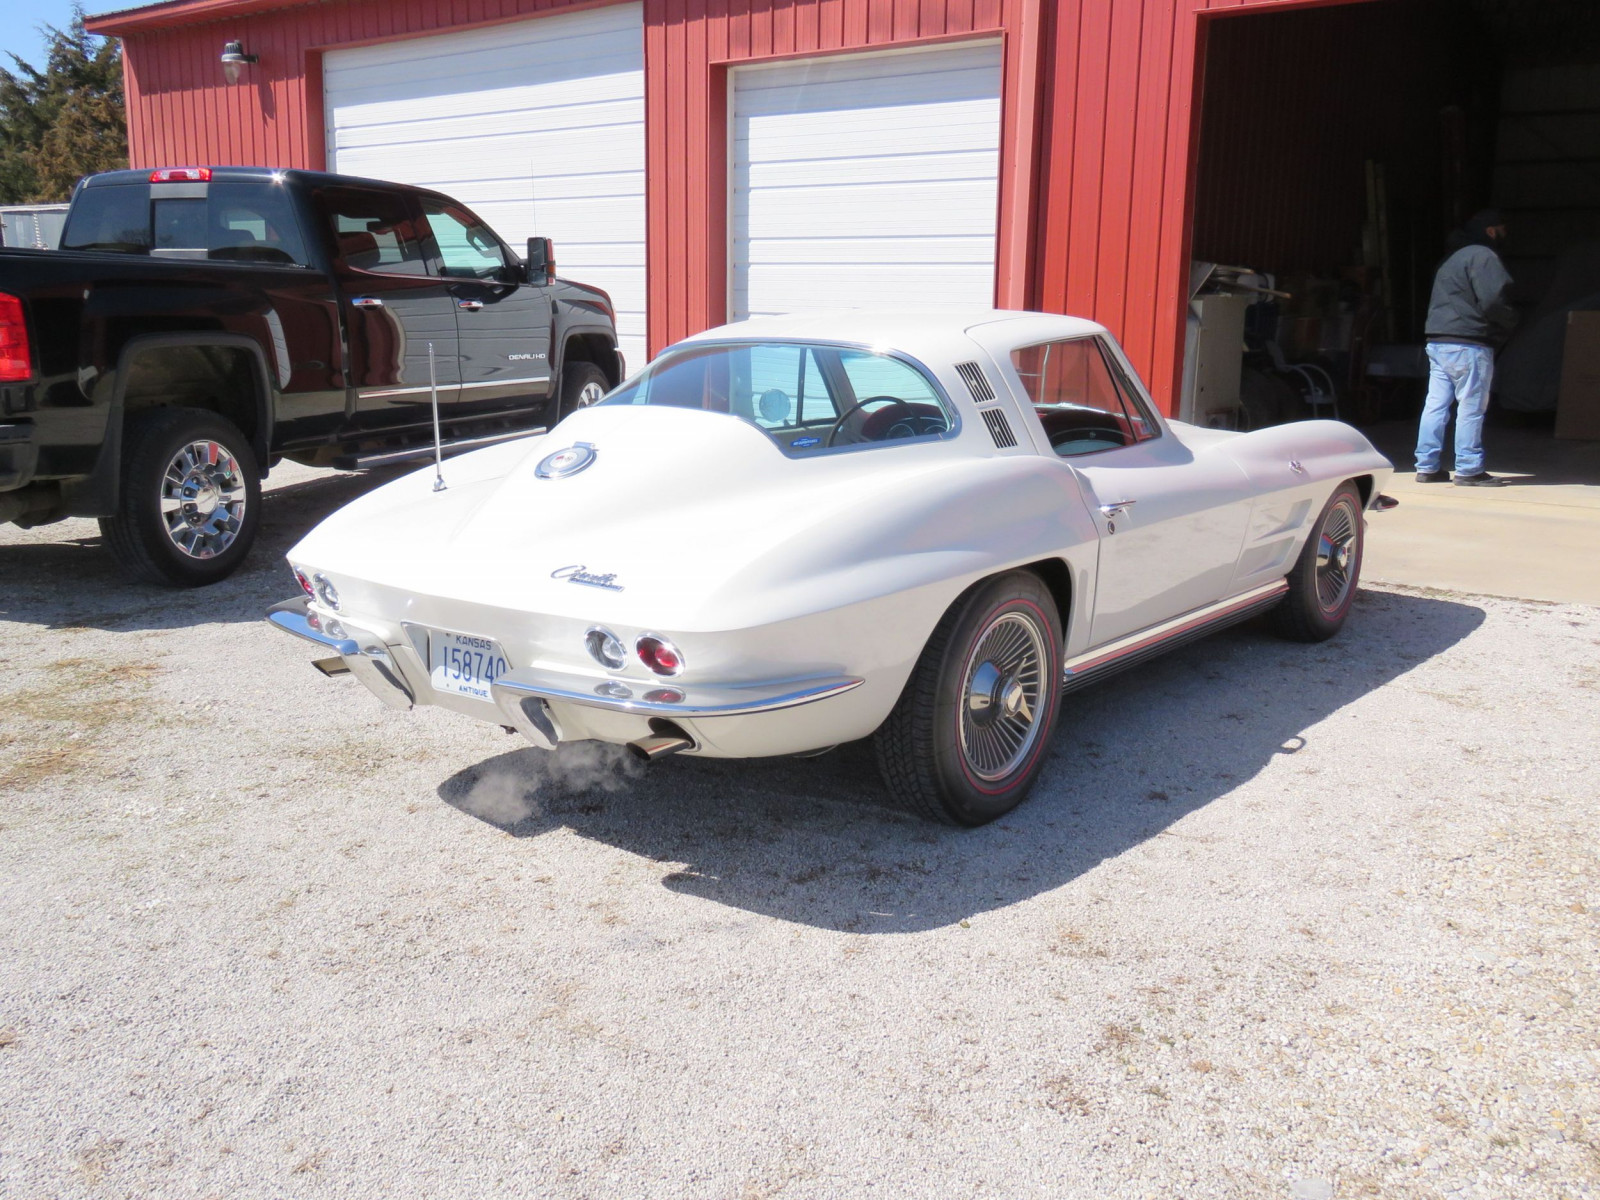 Beautiful 1964 Chevrolet Corvette Sting Ray Coupe - Image 5